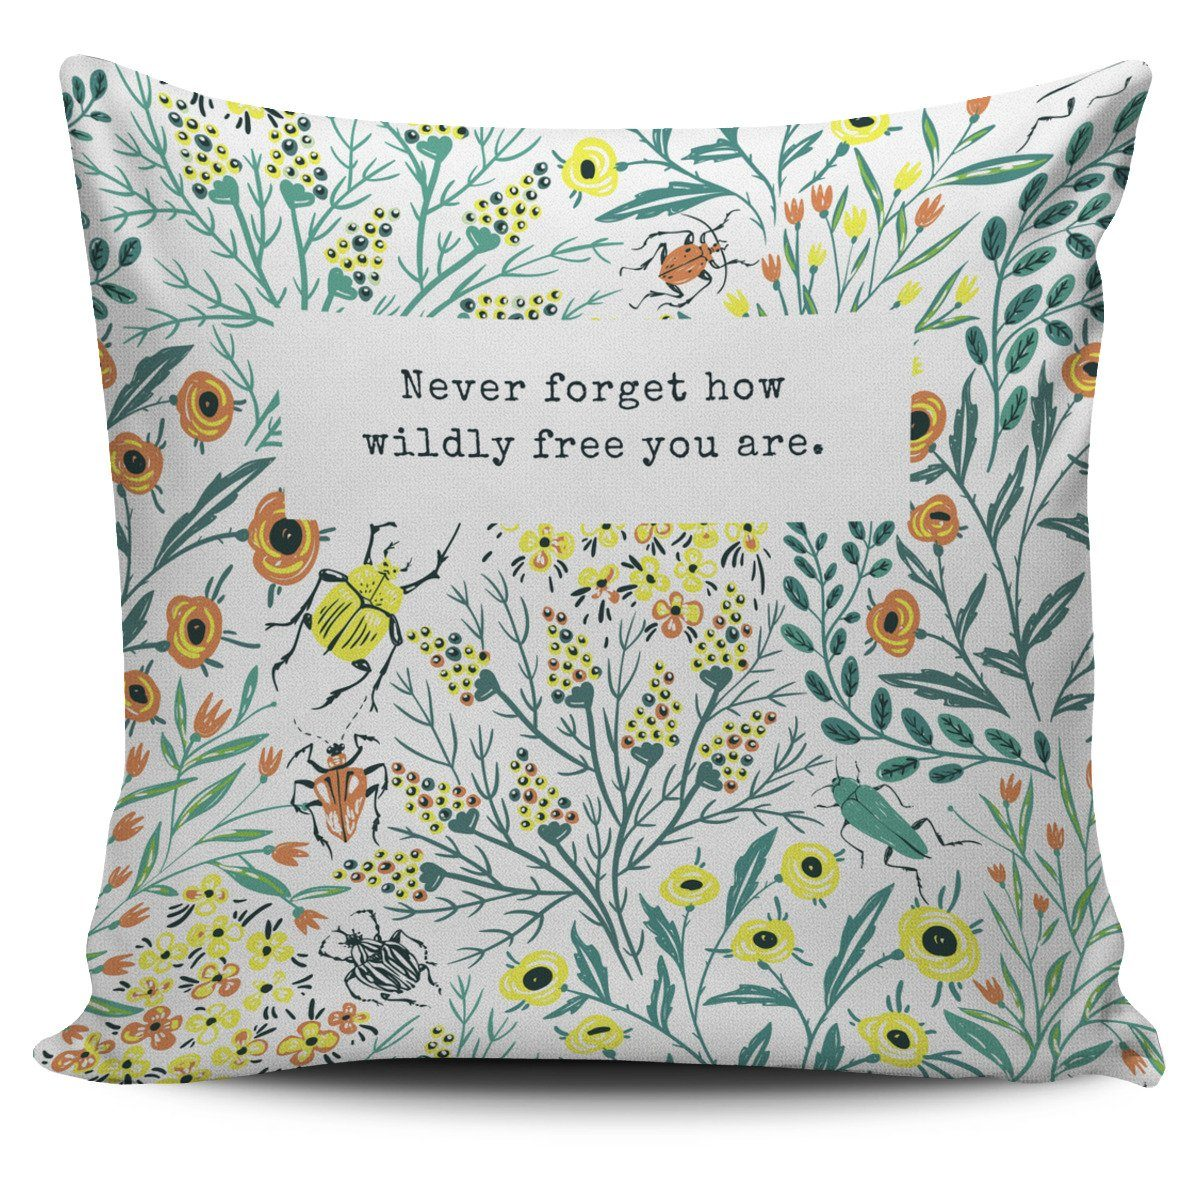 """Never forget how wildly free you are."" Pillow Cover"